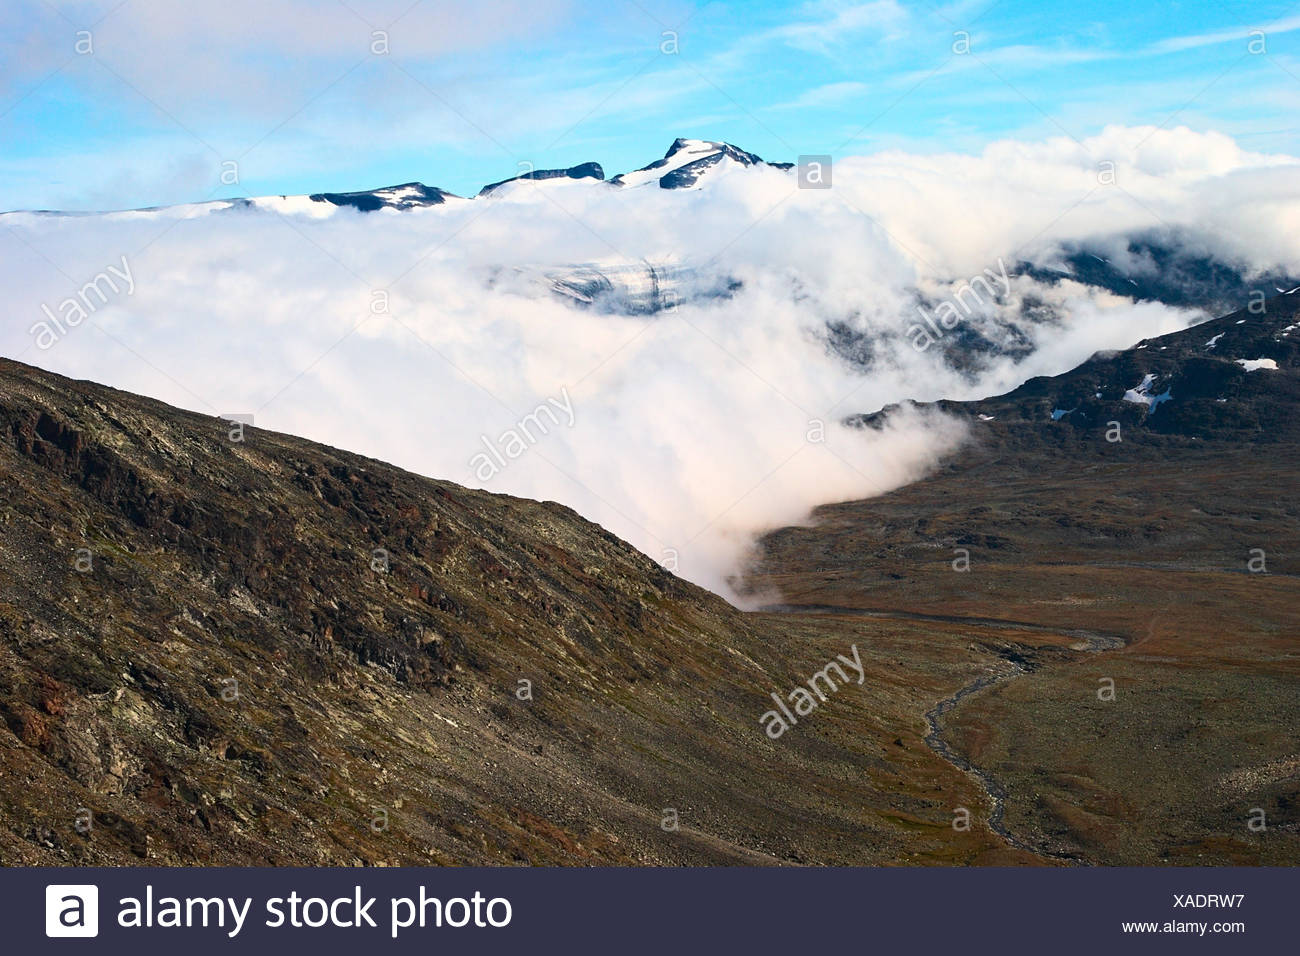 View onto Galdhopiggen from the path to Glittertind in the Jotunheimen National Park in Norway. Galdhopiggen is Norway's highest, Glittertind its second highest peak. - Stock Image